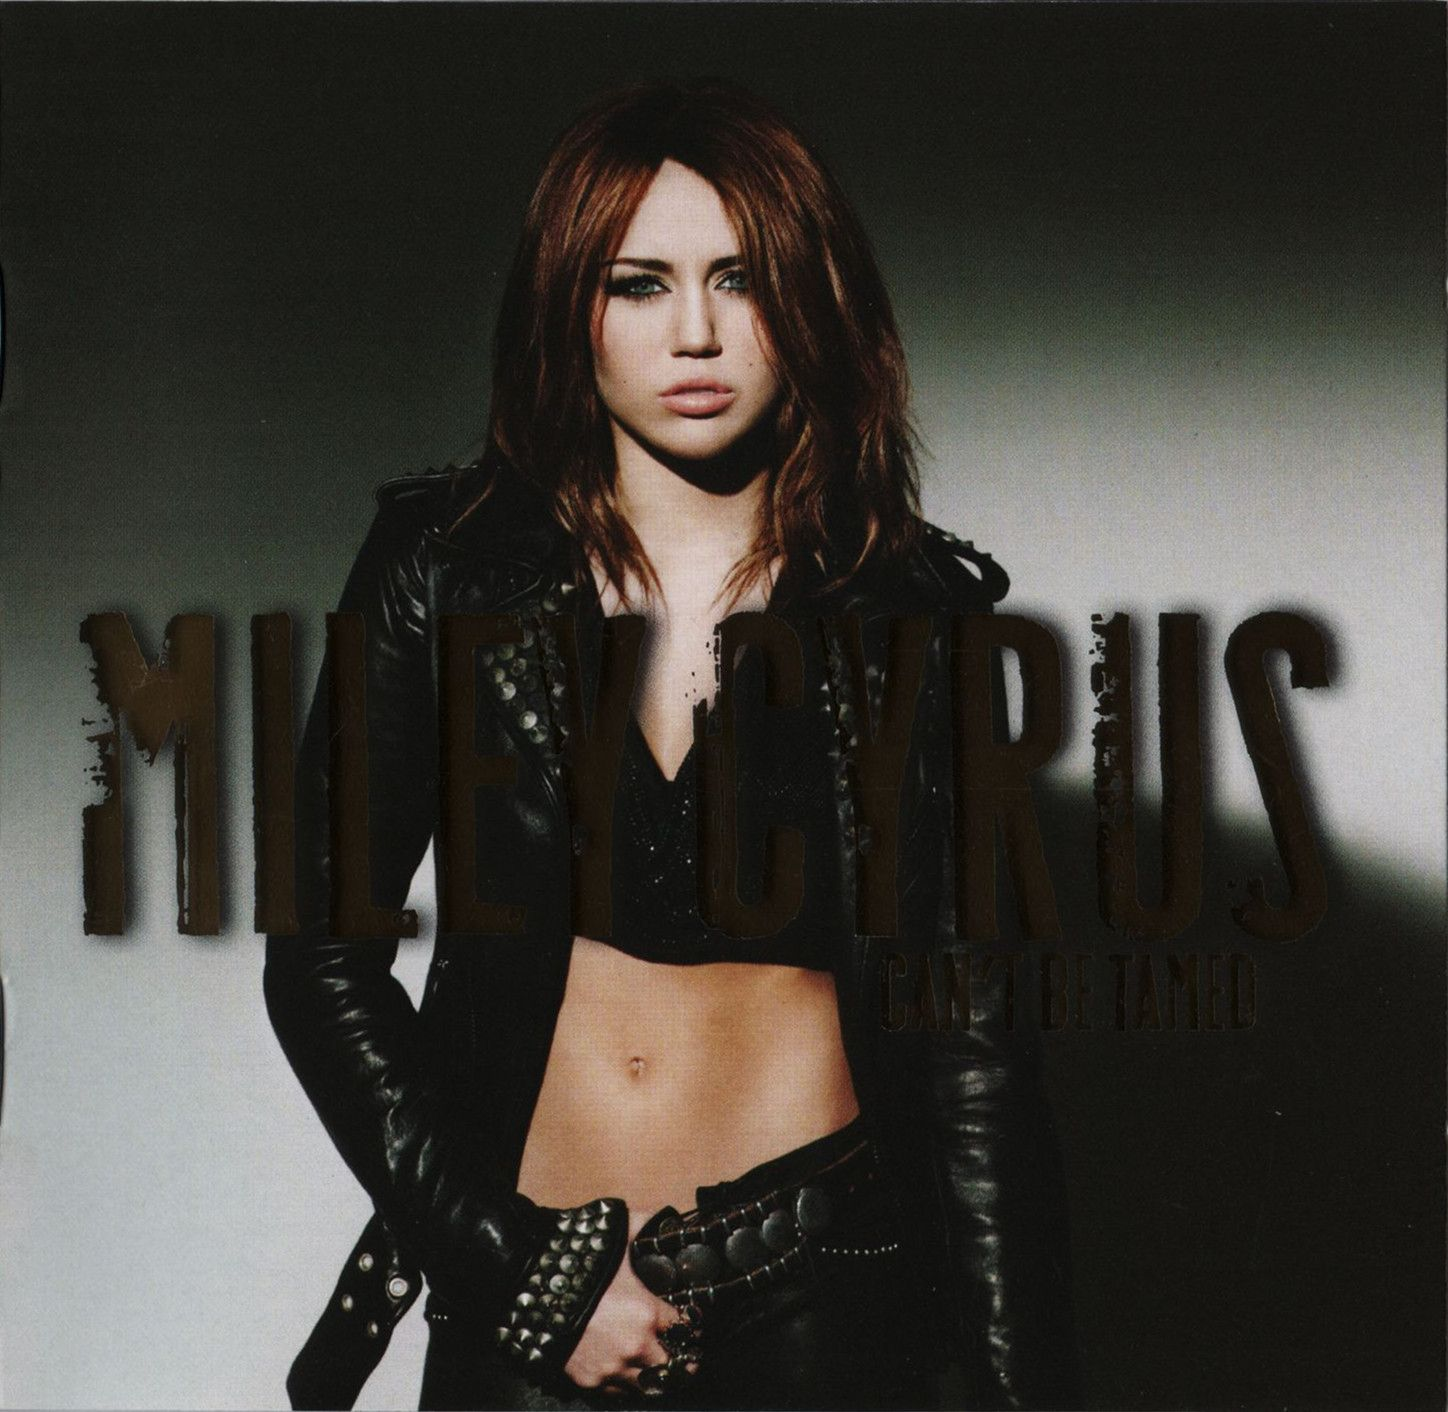 Miley Cyrus - Can't Be Tamed album cover